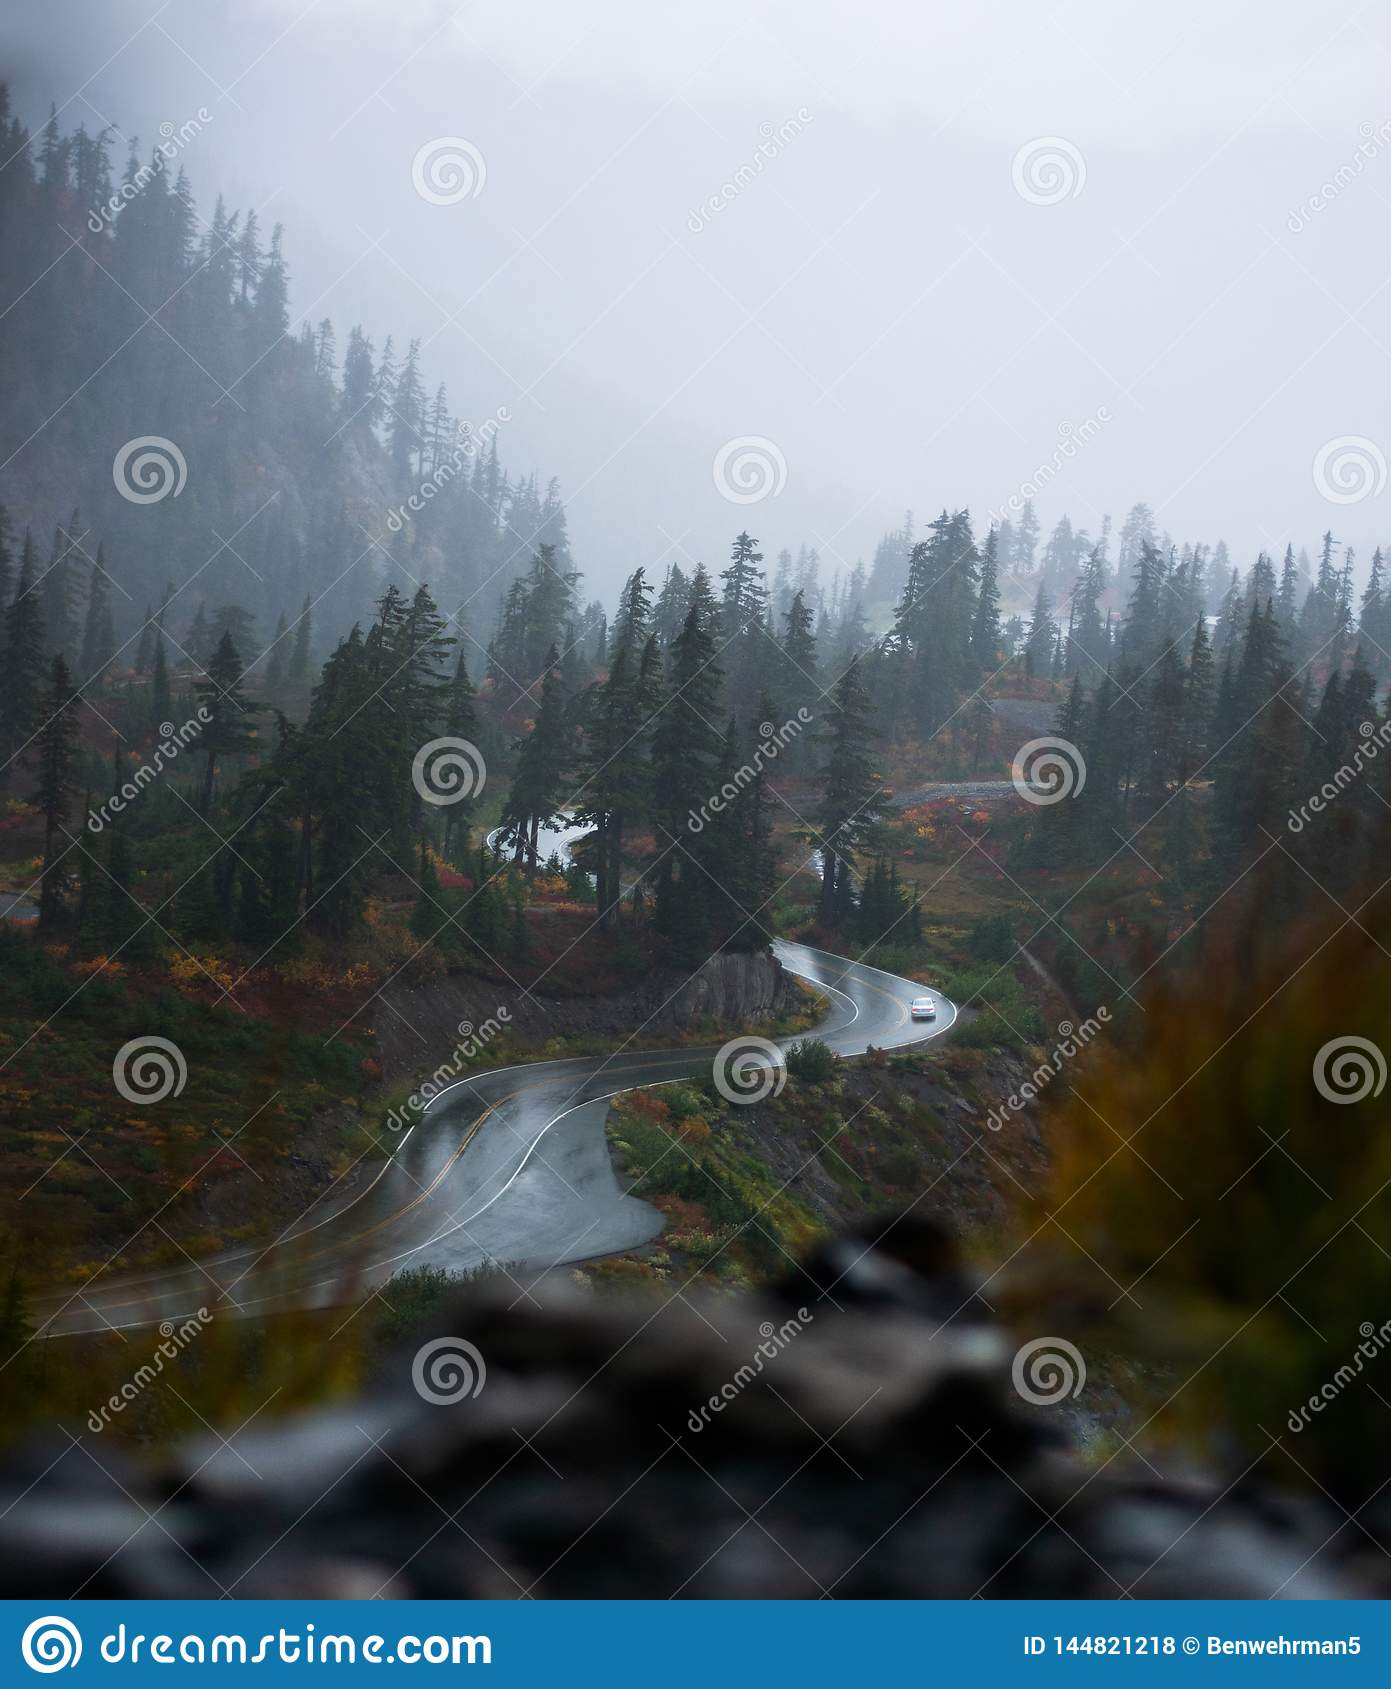 Misty Mountaintop in the Forest